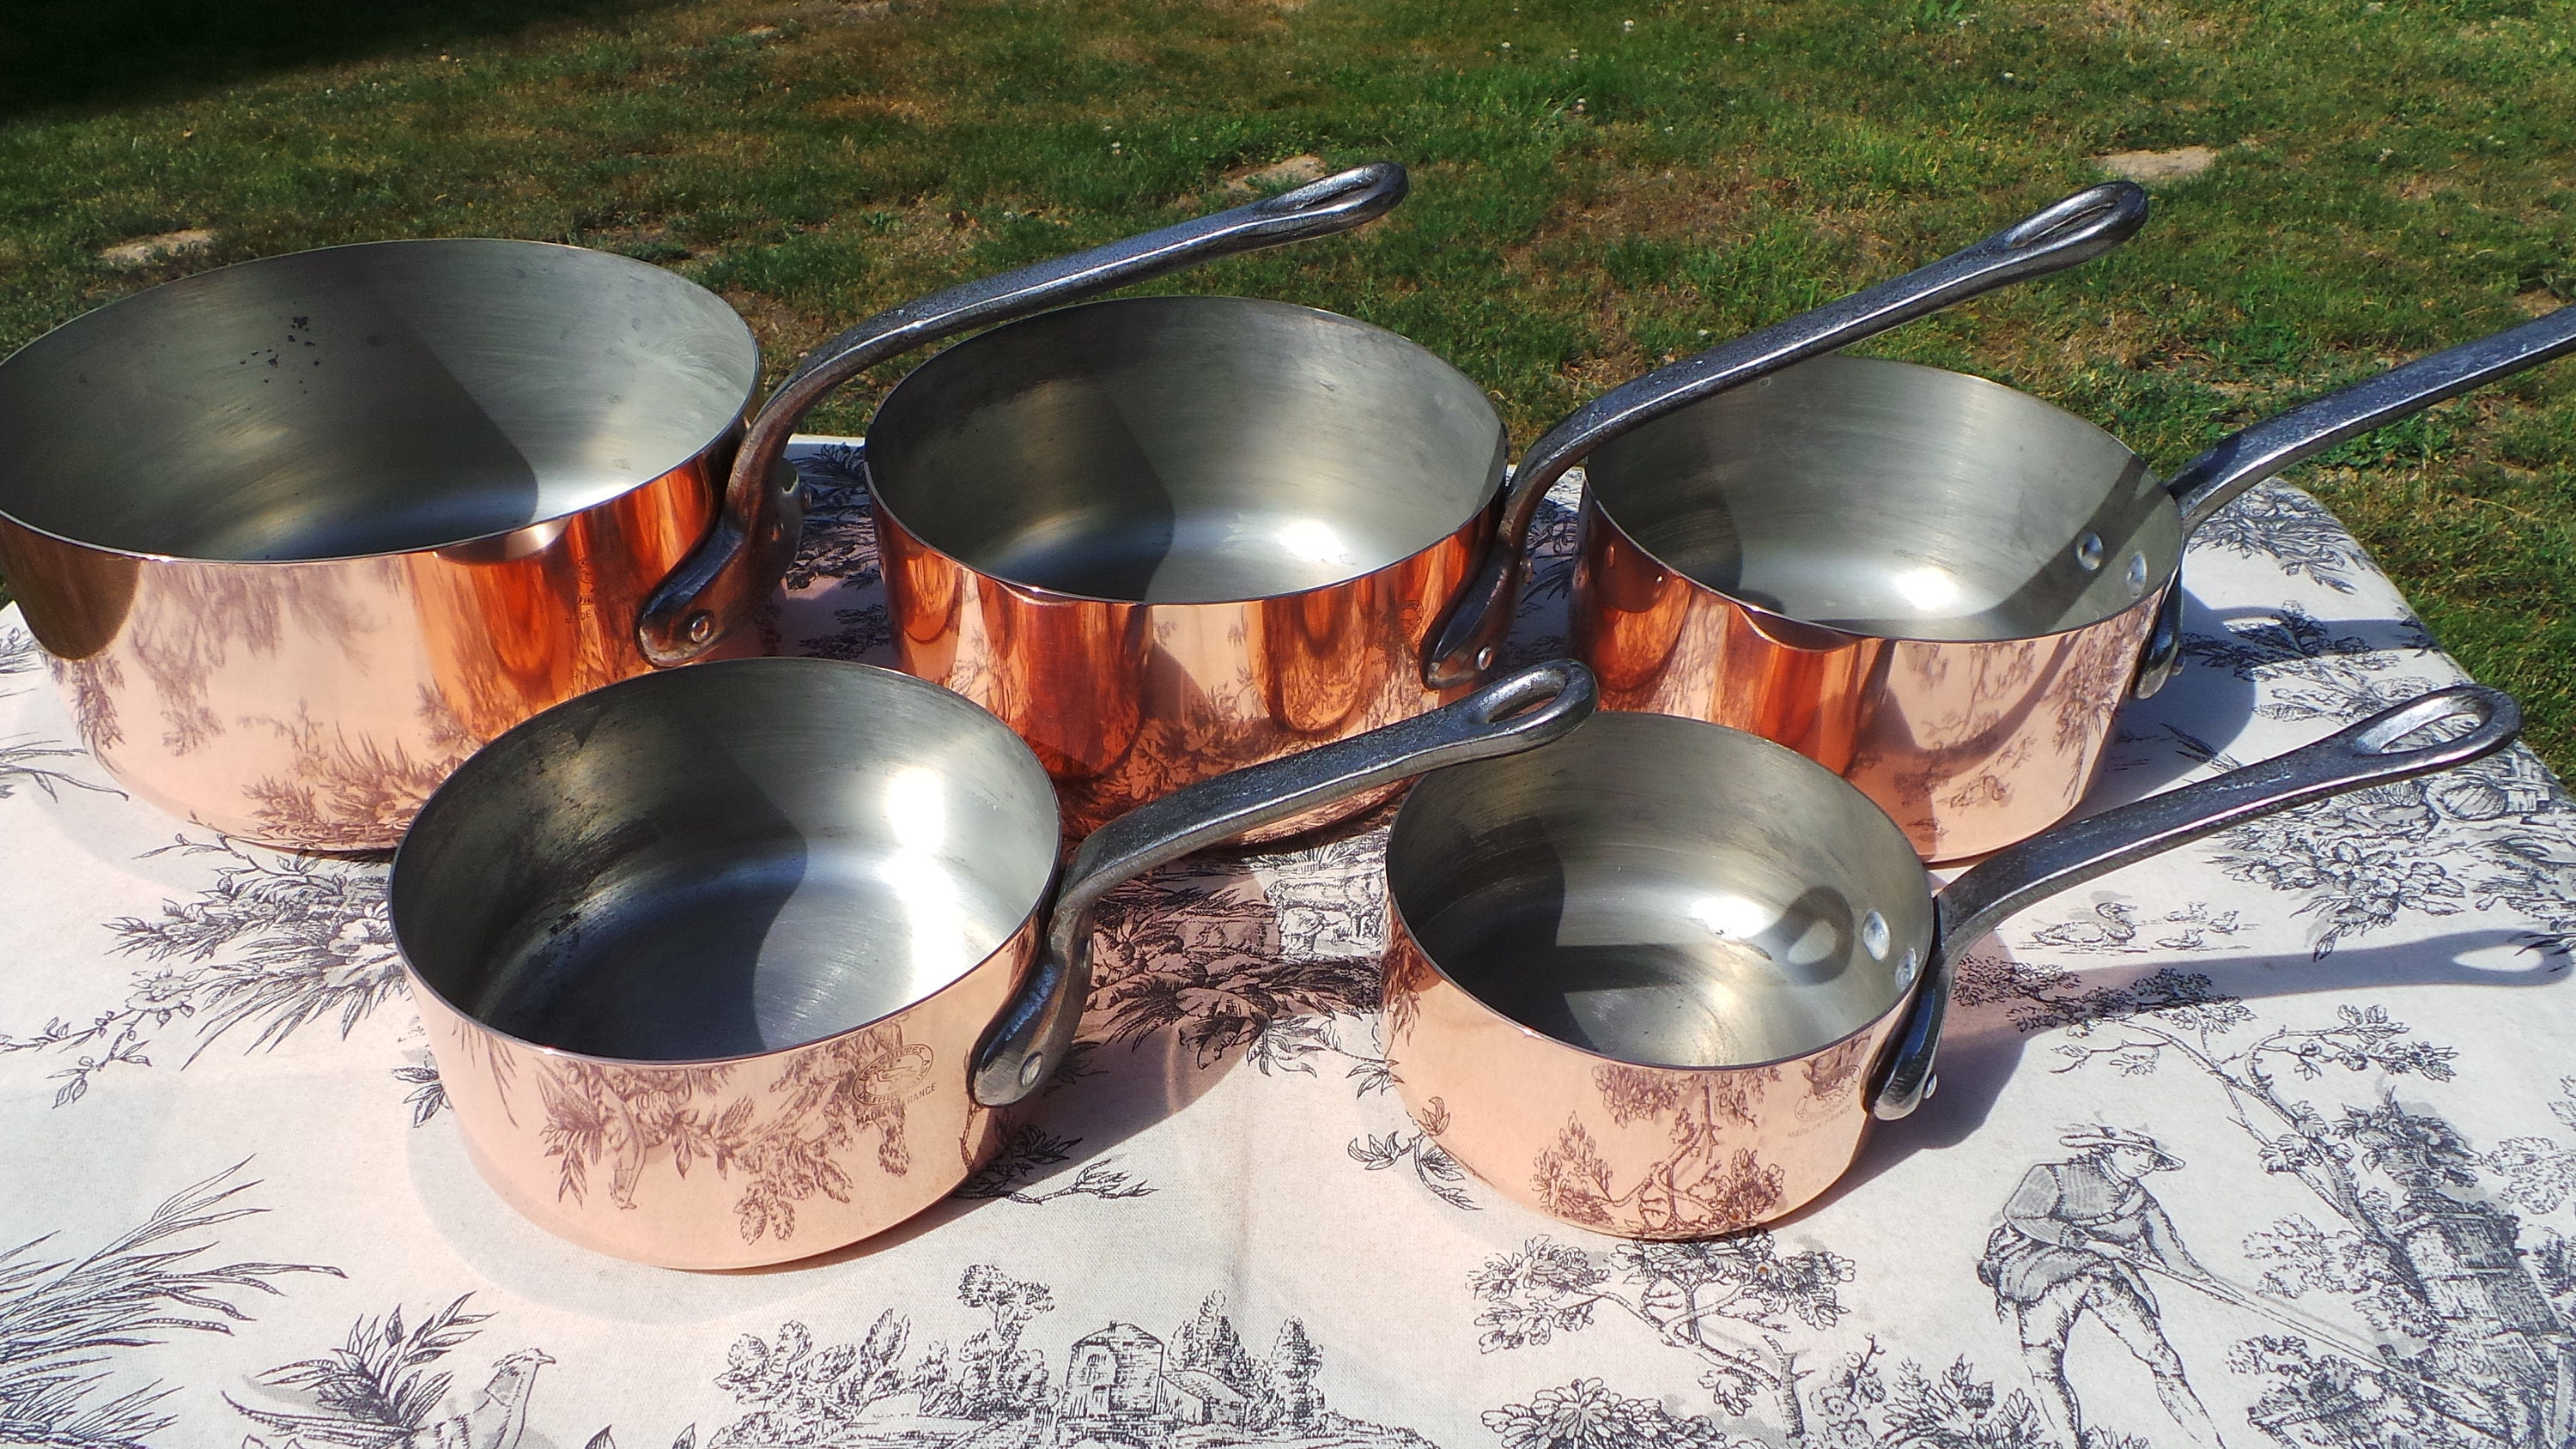 1mm Tin Lined Pans - Fabulous Domestic Pans